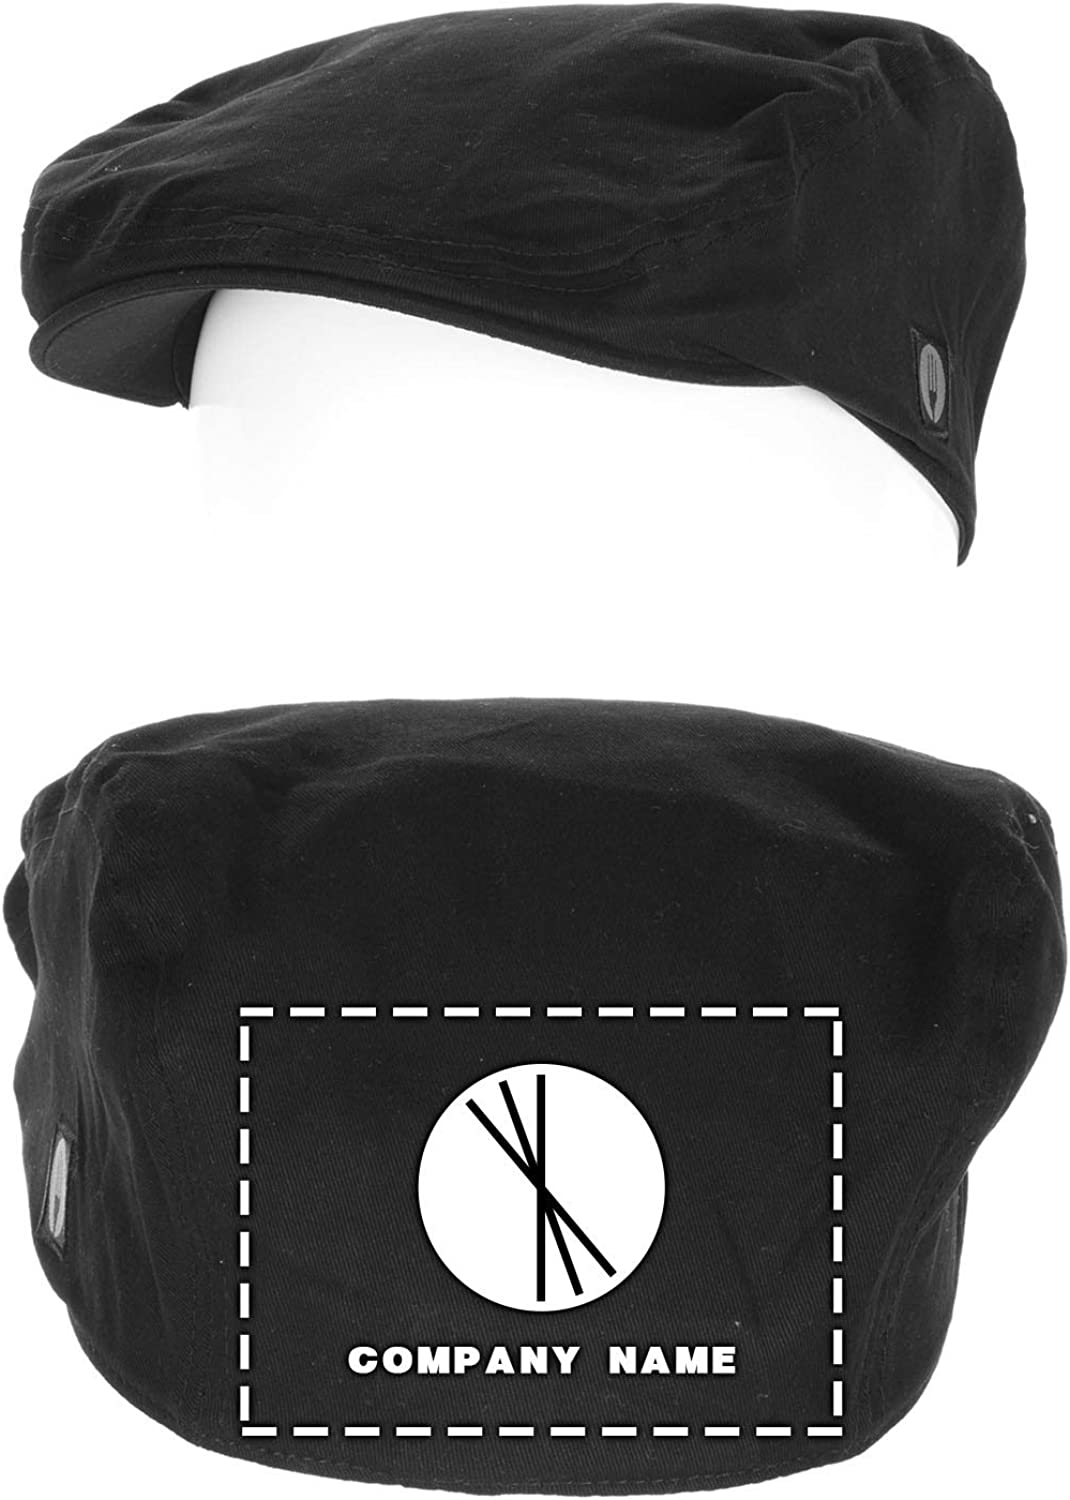 Chef Works Regular store Custom Embroidered Black L Driver XL price - Cap